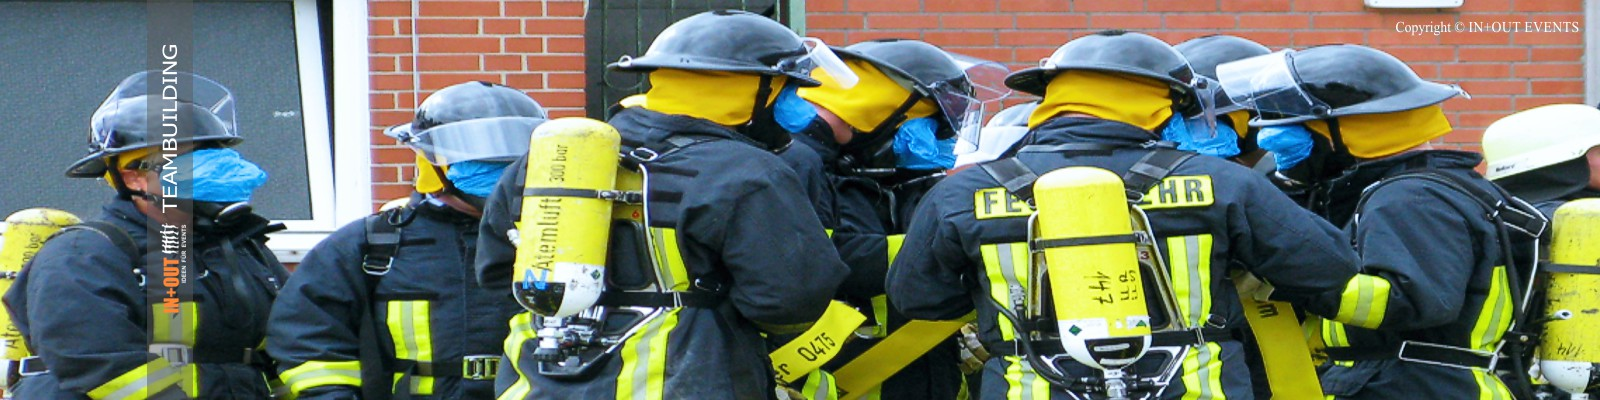 Teambuilding Event Idee Firefighter Challenge